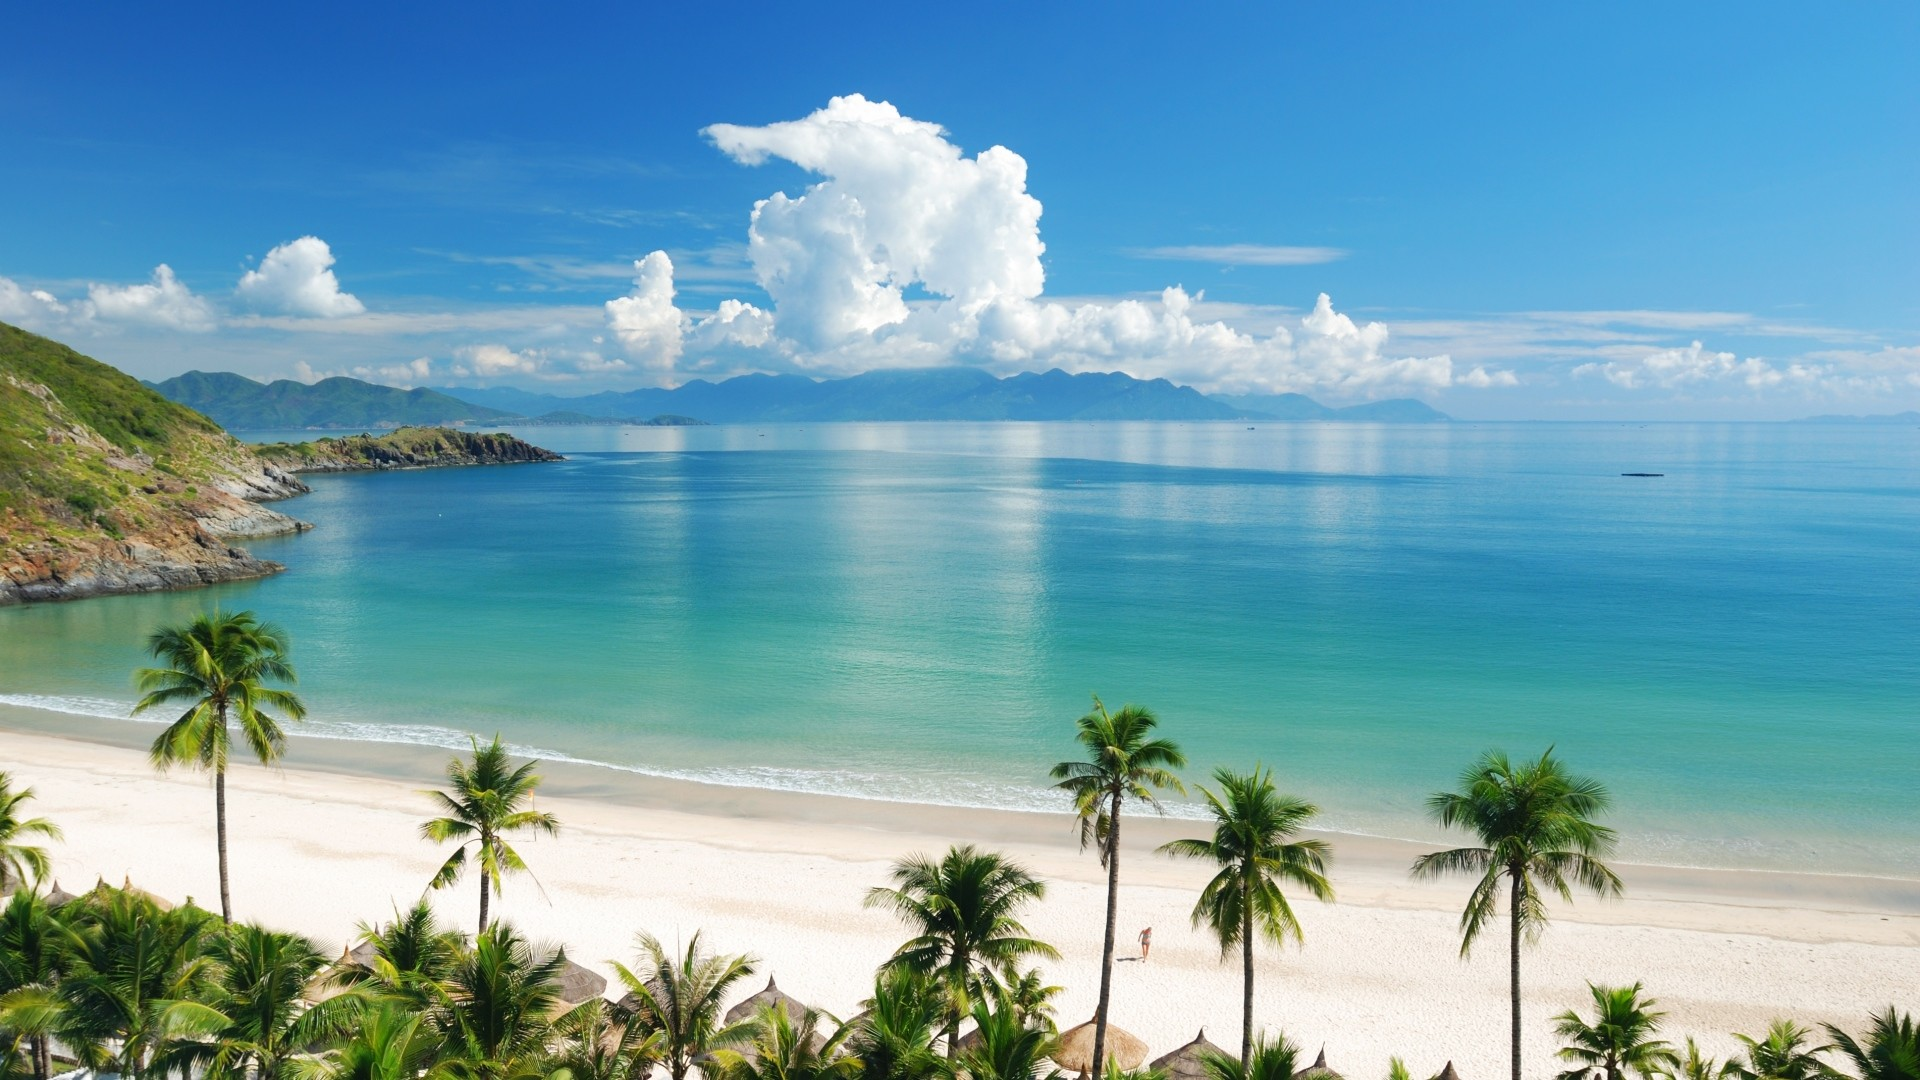 1920x1080 ... Background Full HD 1080p.  Wallpaper beach, tropics, sea,  sand, summer